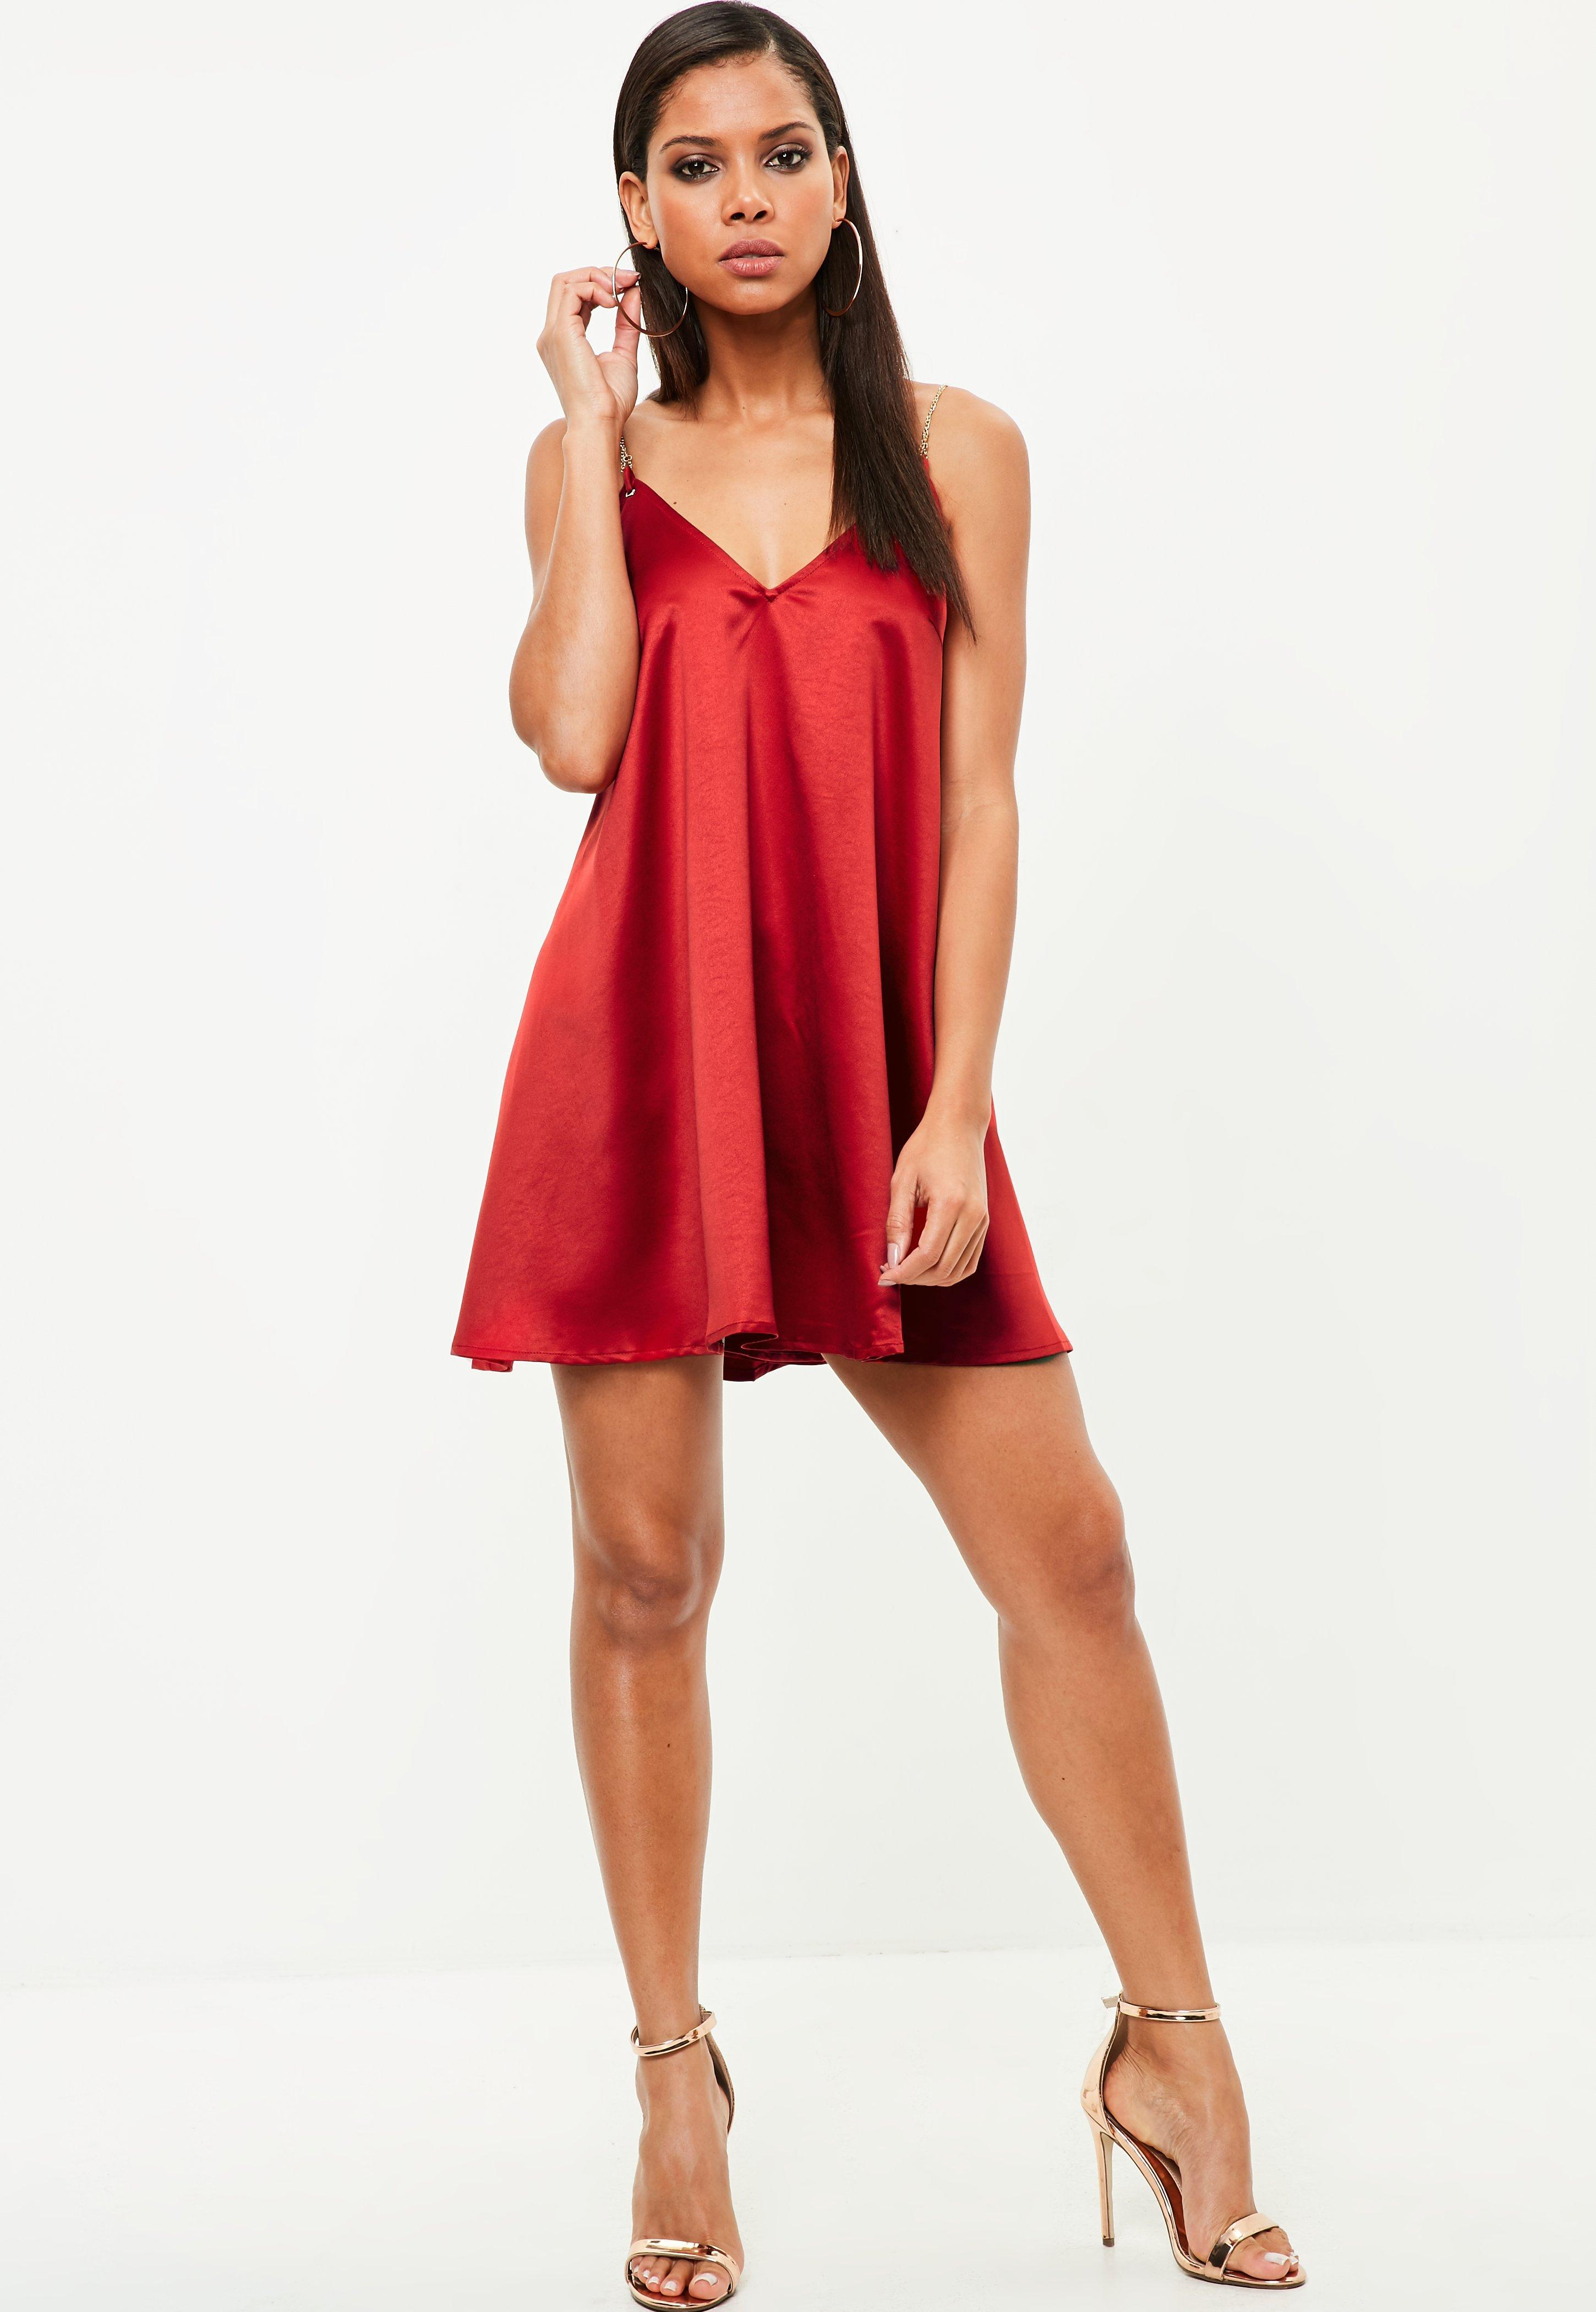 b871067d2c Missguided Red Chain Strap Satin Swing Dress in Red - Lyst